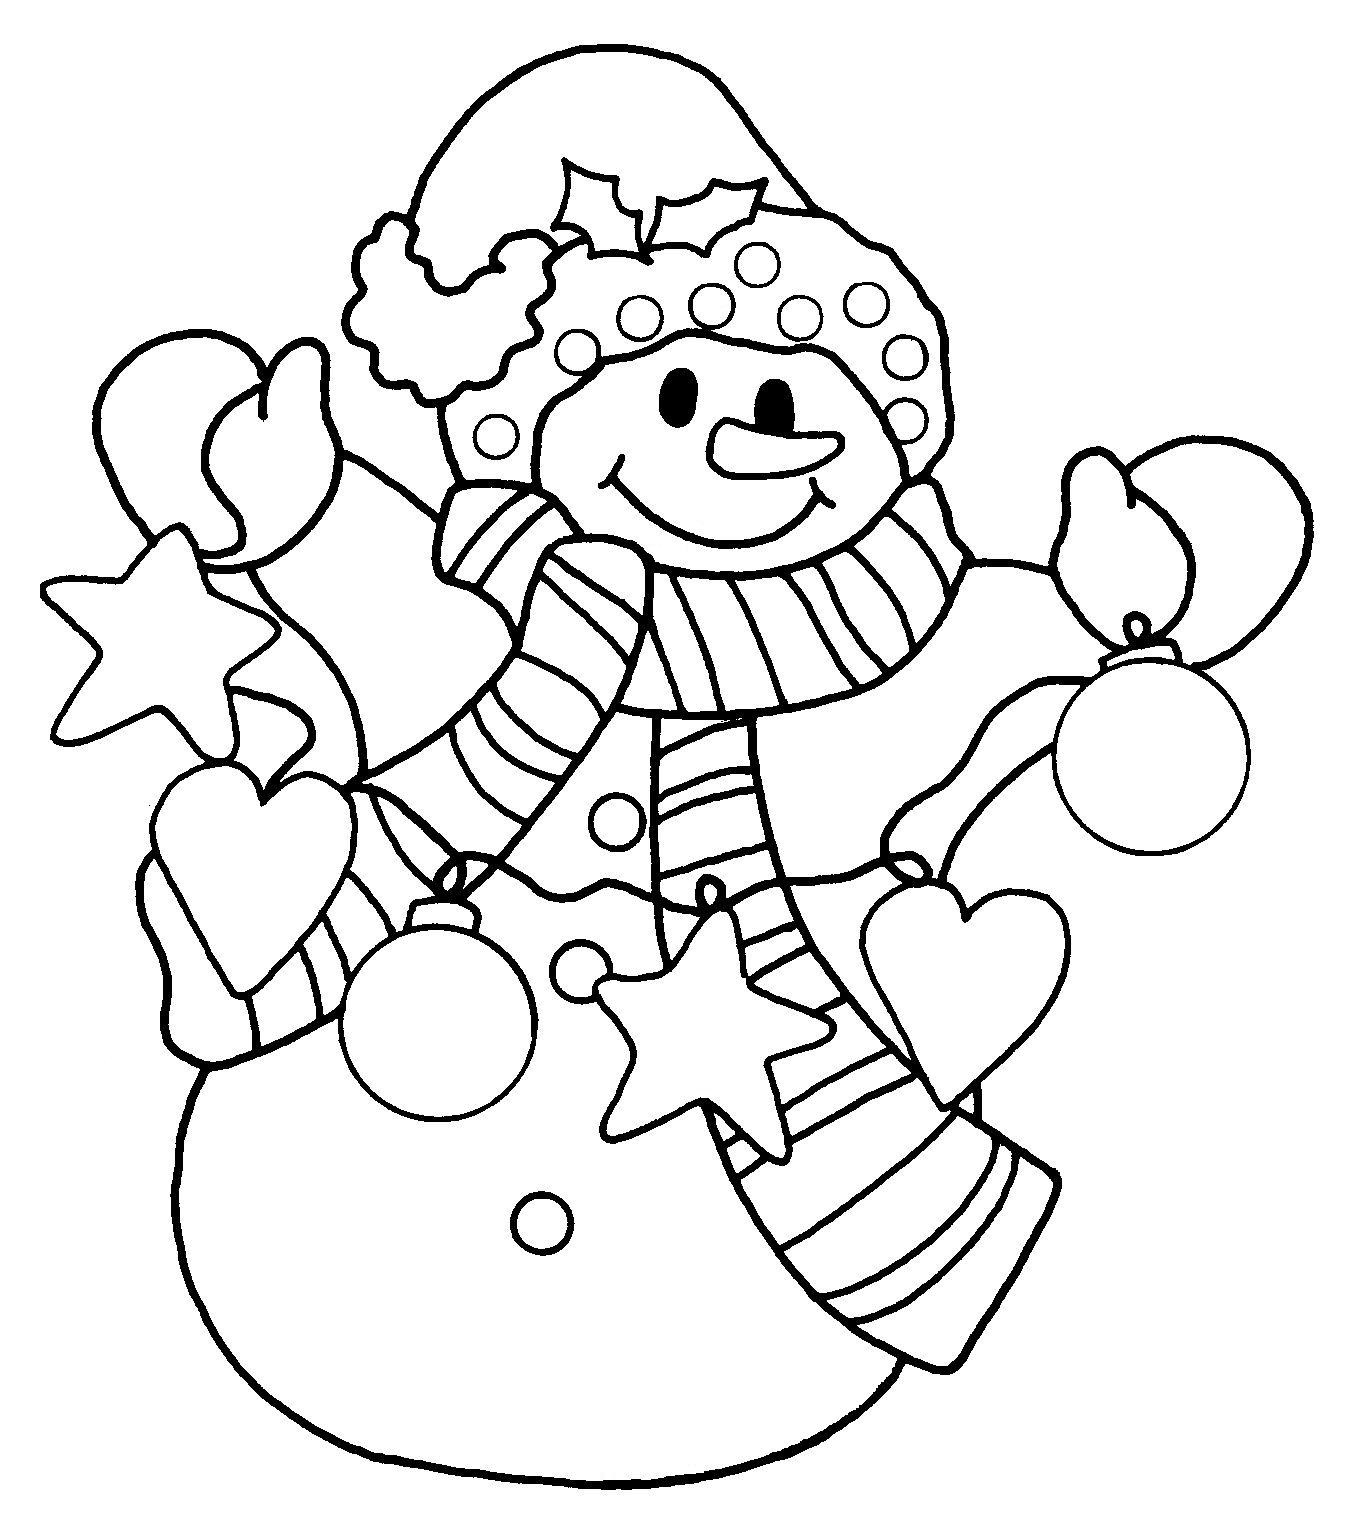 Best ideas about Free Christmas Printable Coloring Sheets For Kids . Save or Pin DZ Doodles Digital Stamps Oodles of Doodles News Freebie Now.